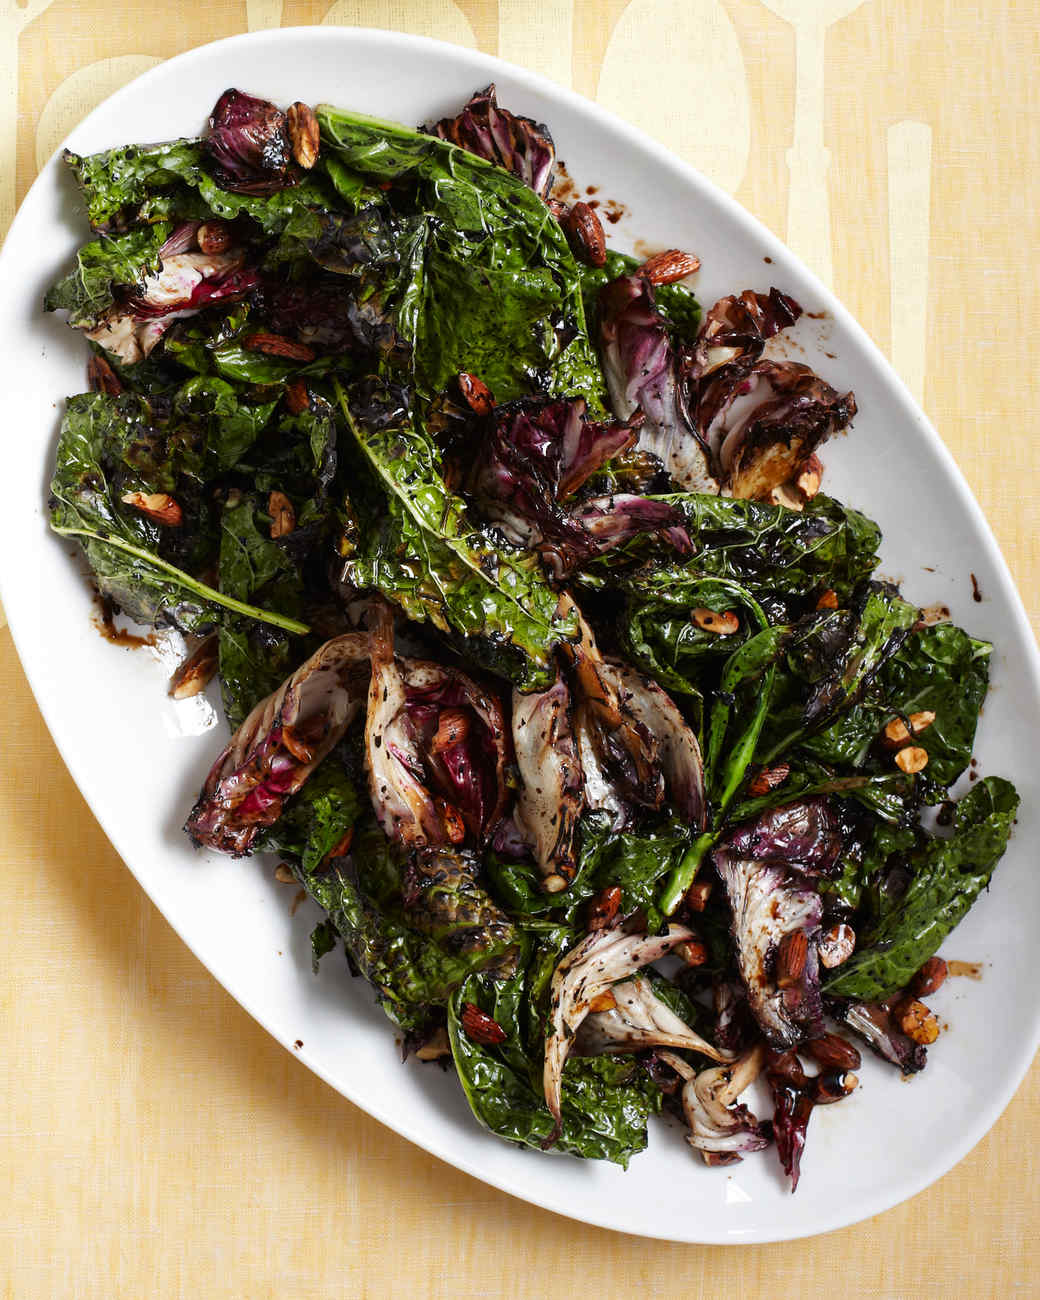 grilled-kale-and-radicchio-m109160.jpg